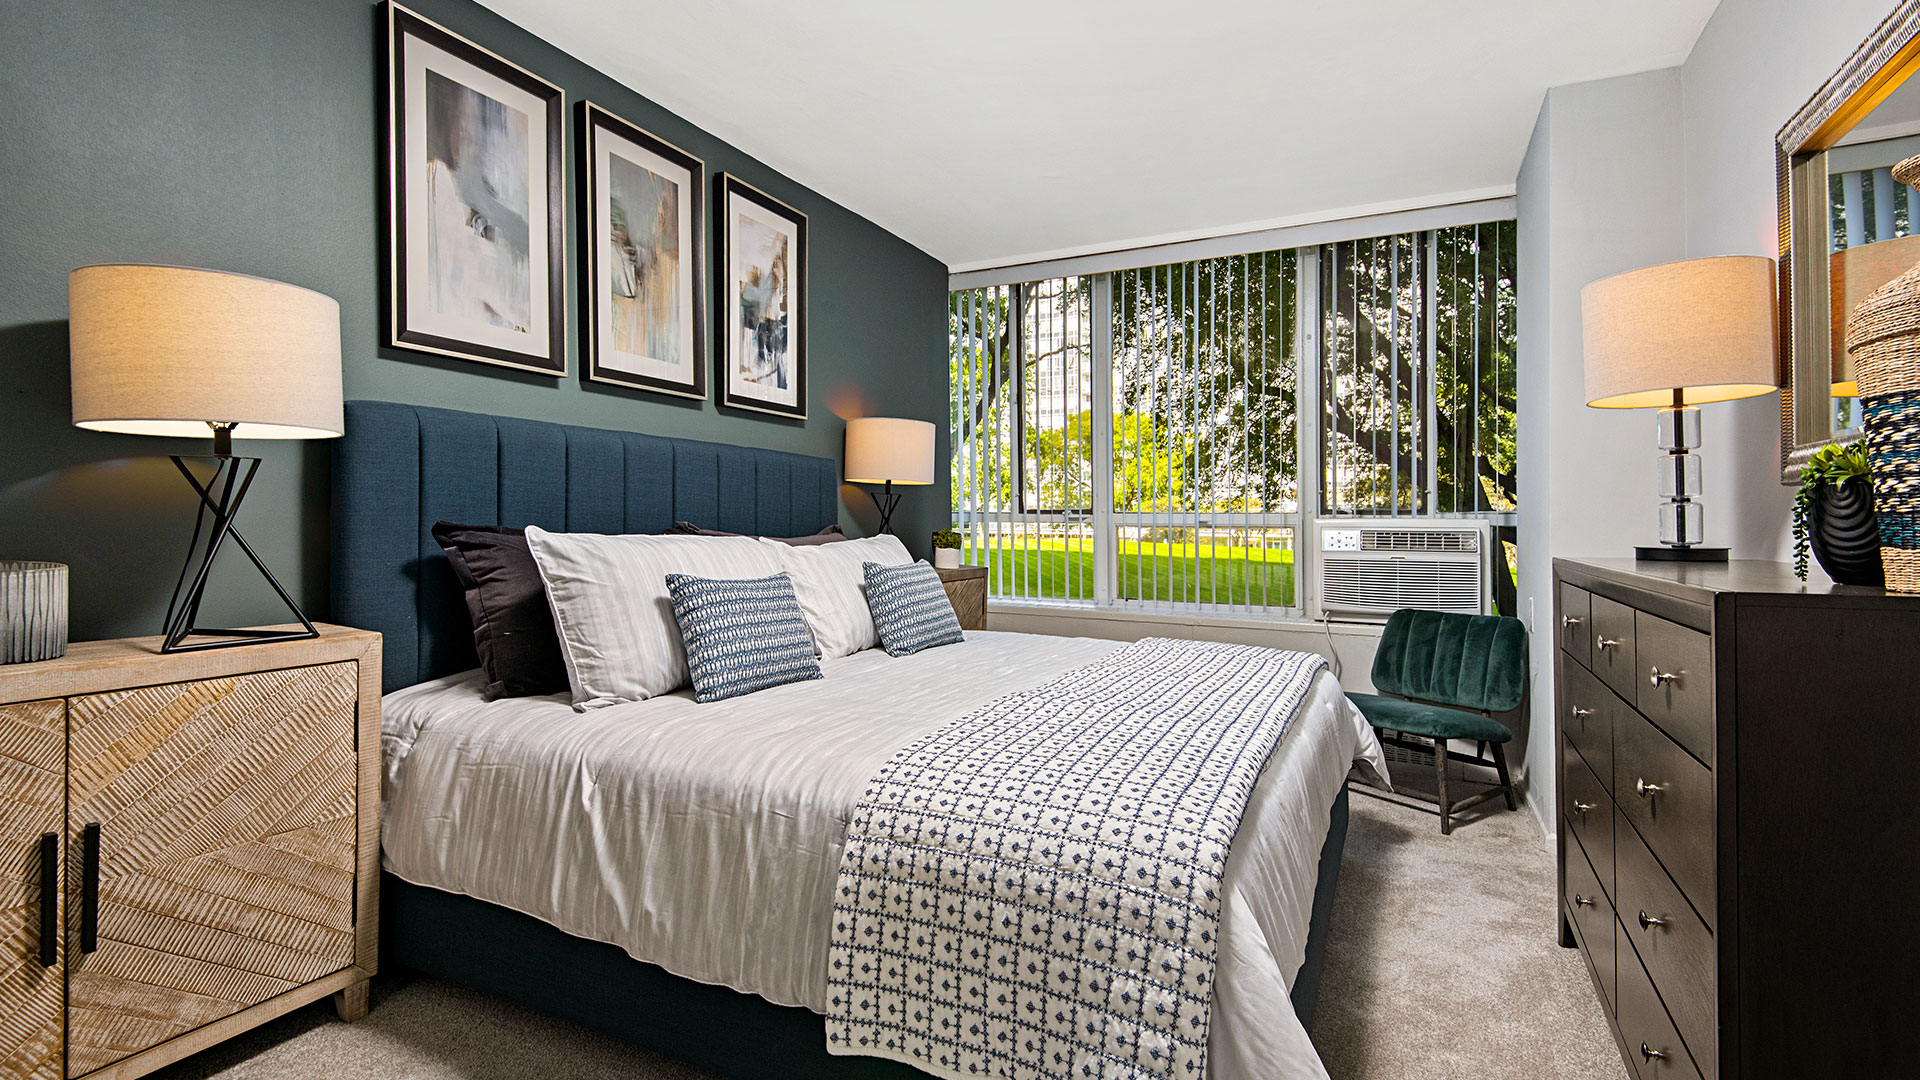 A high-rise bedroom at Lake Meadows with a large bed and night stands across from a large dresser. Trees and a green park can be seen out the window.